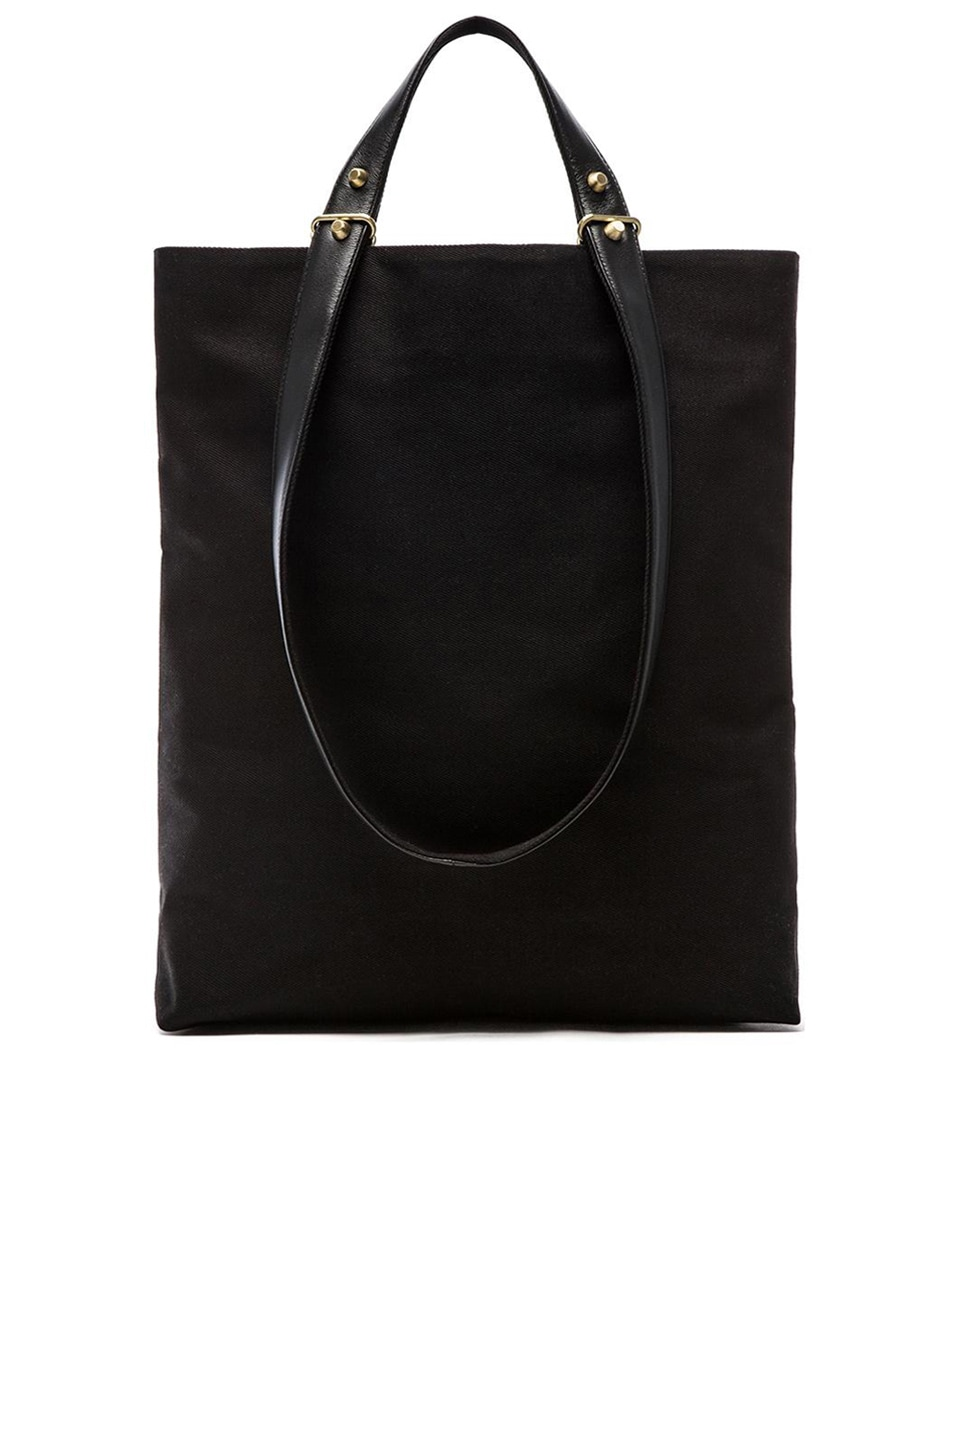 Two Handle Tote at REVOLVE